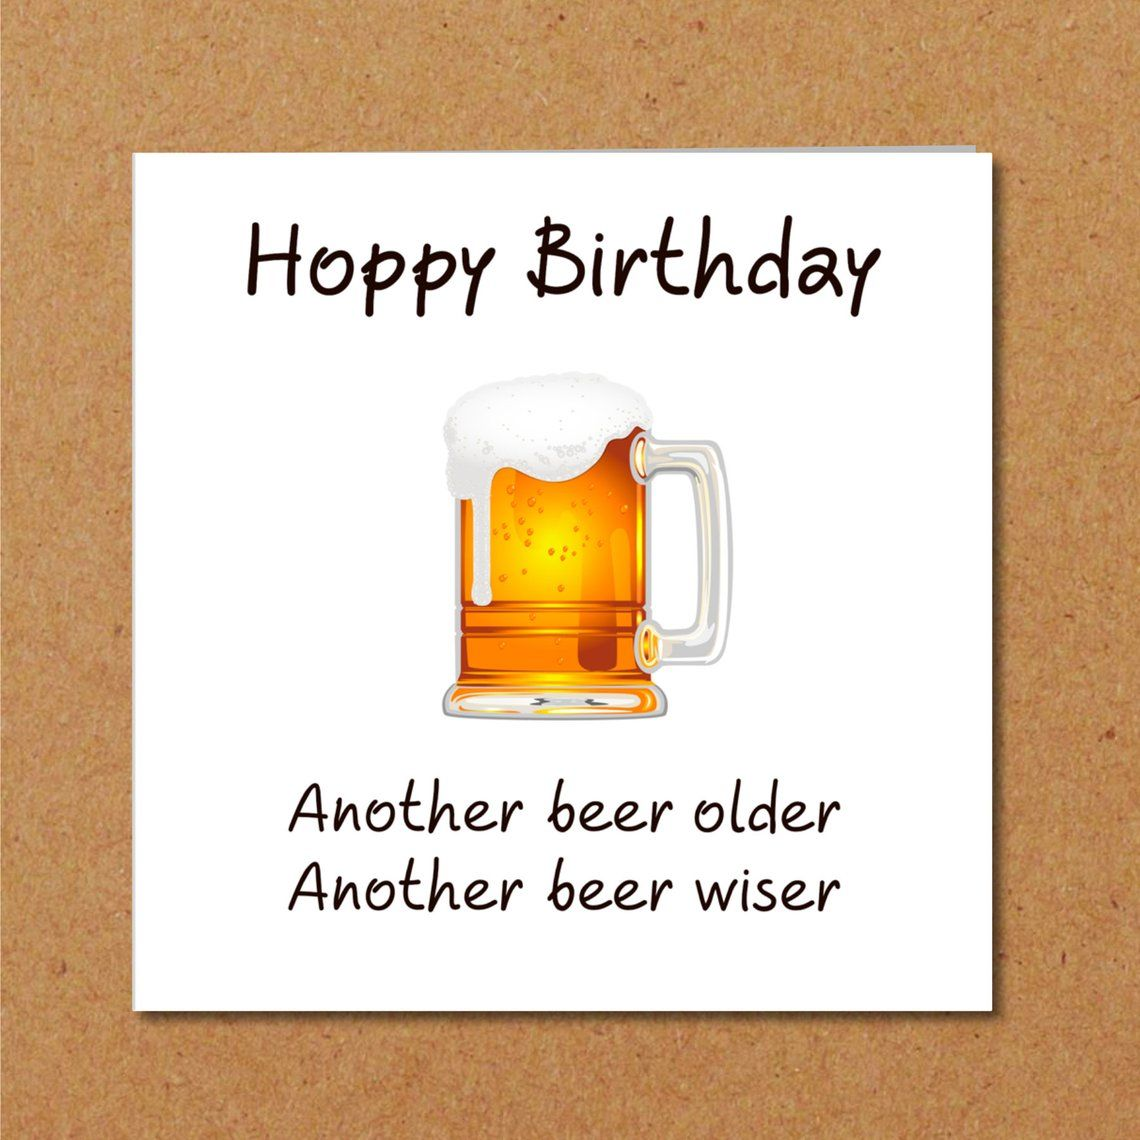 Funny Beer Birthday Card For Dad Son Male Friend Humorous Etsy Funny Beer Birthday Cards Dad Birthday Card Birthday Cards For Son